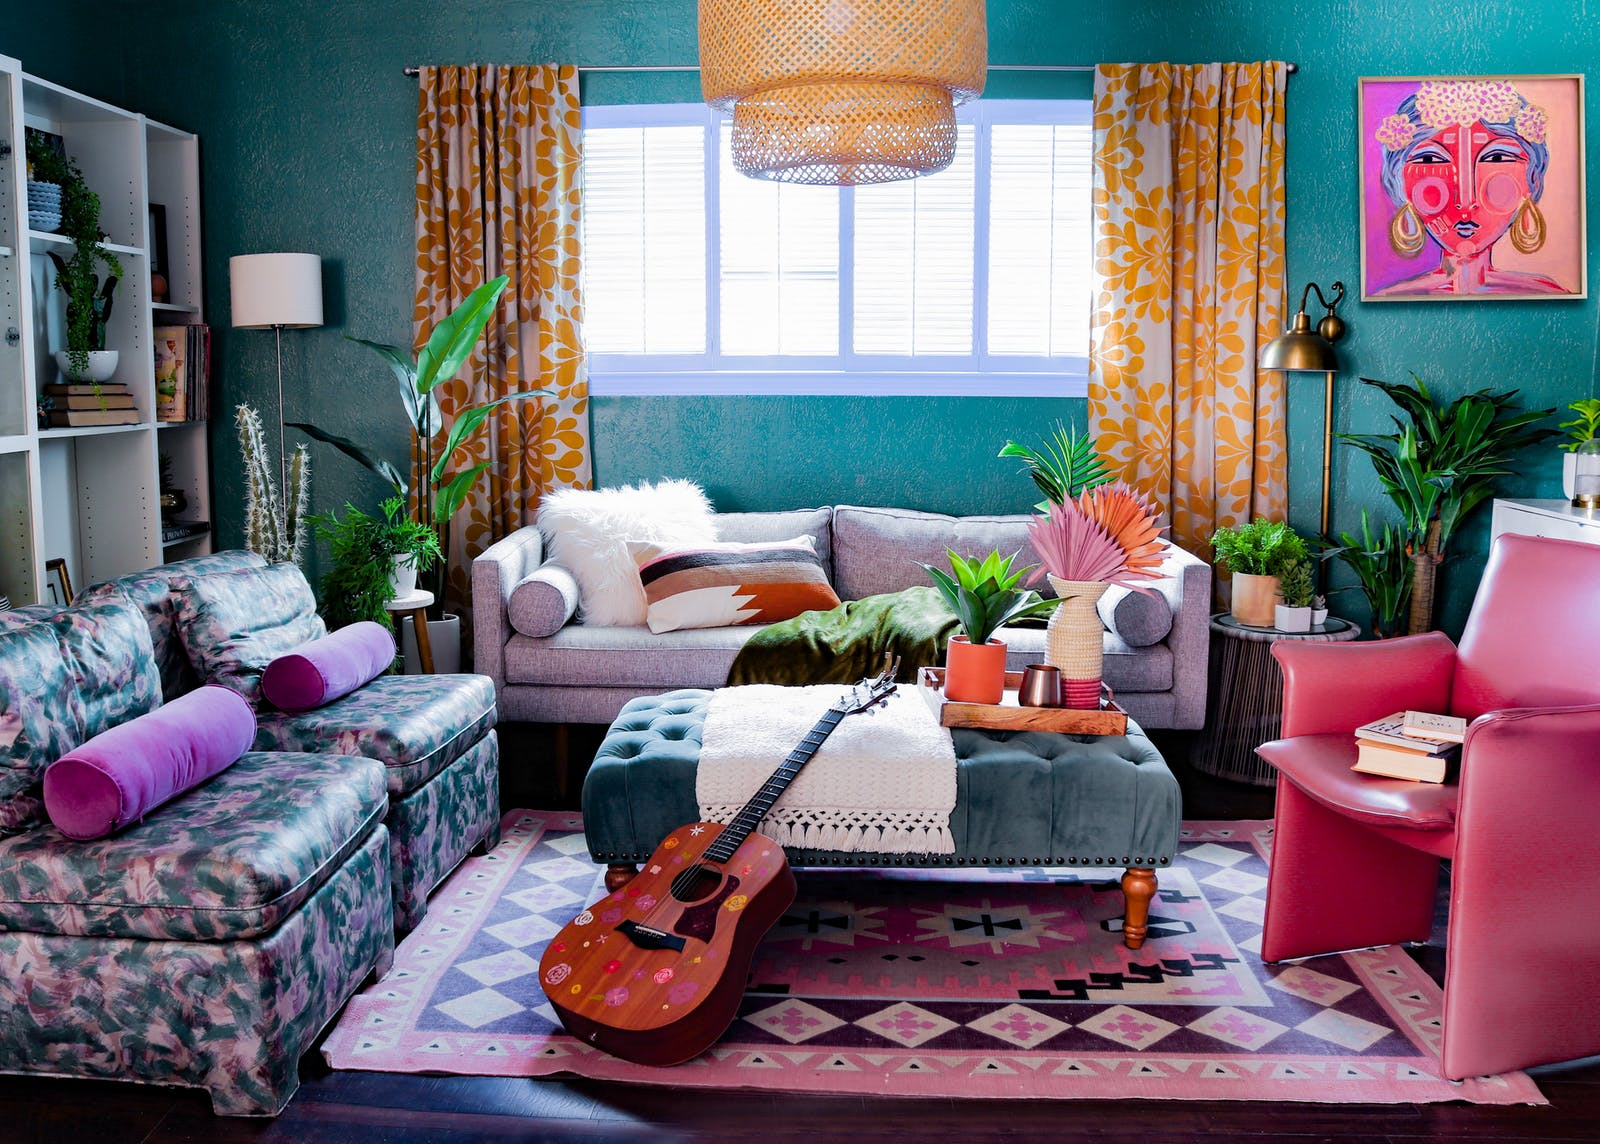 Image of vibrant living room with guitar and bohemian print rug